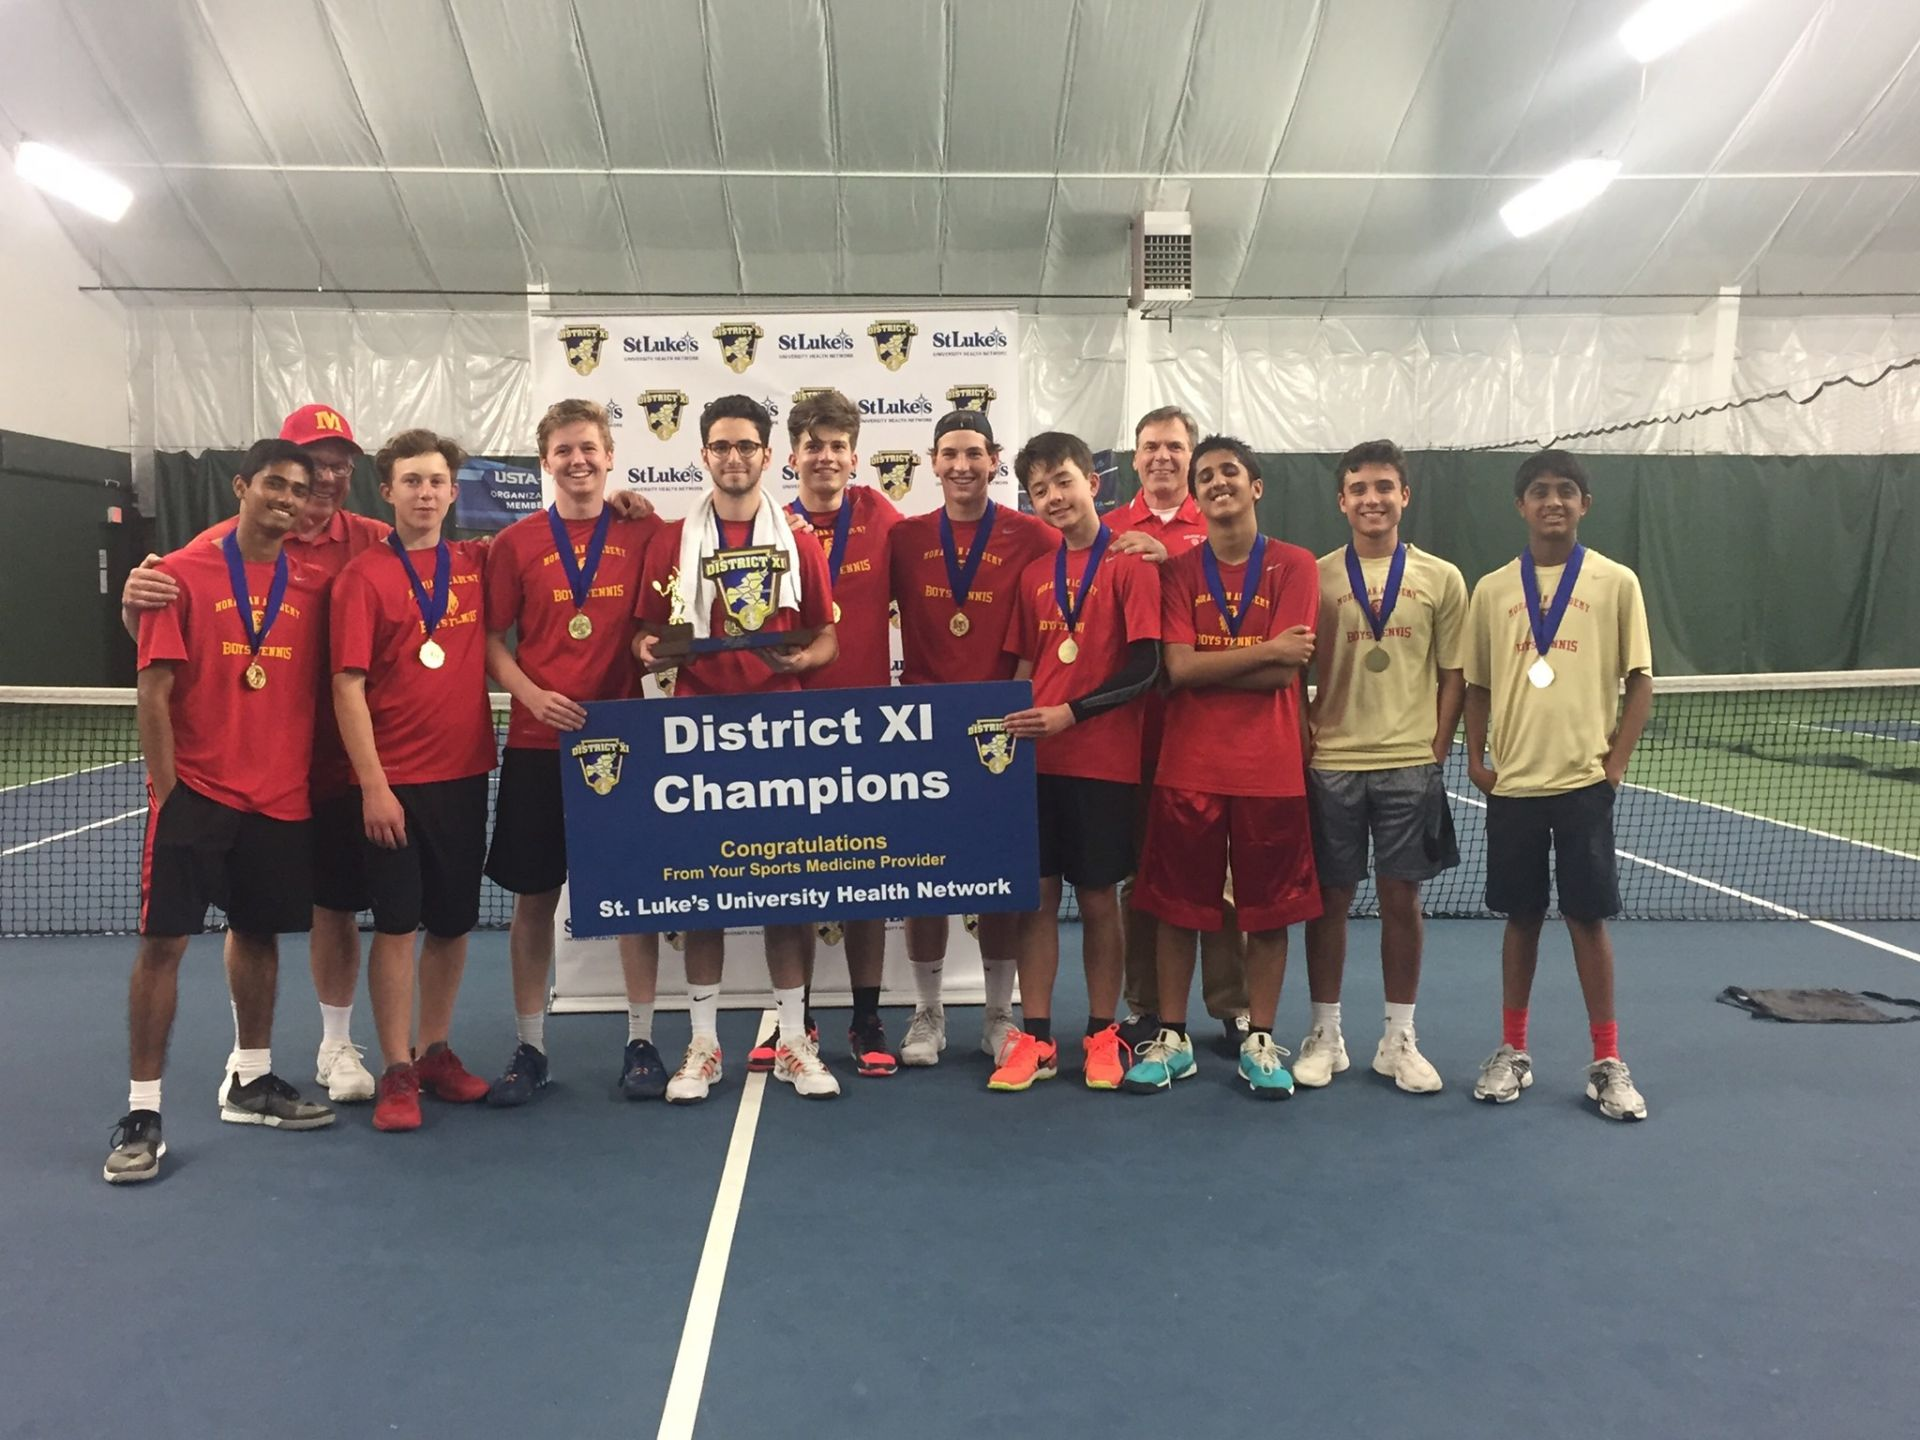 Our Boys' Tennis Team SMASH'ed it as new District XI Champions!